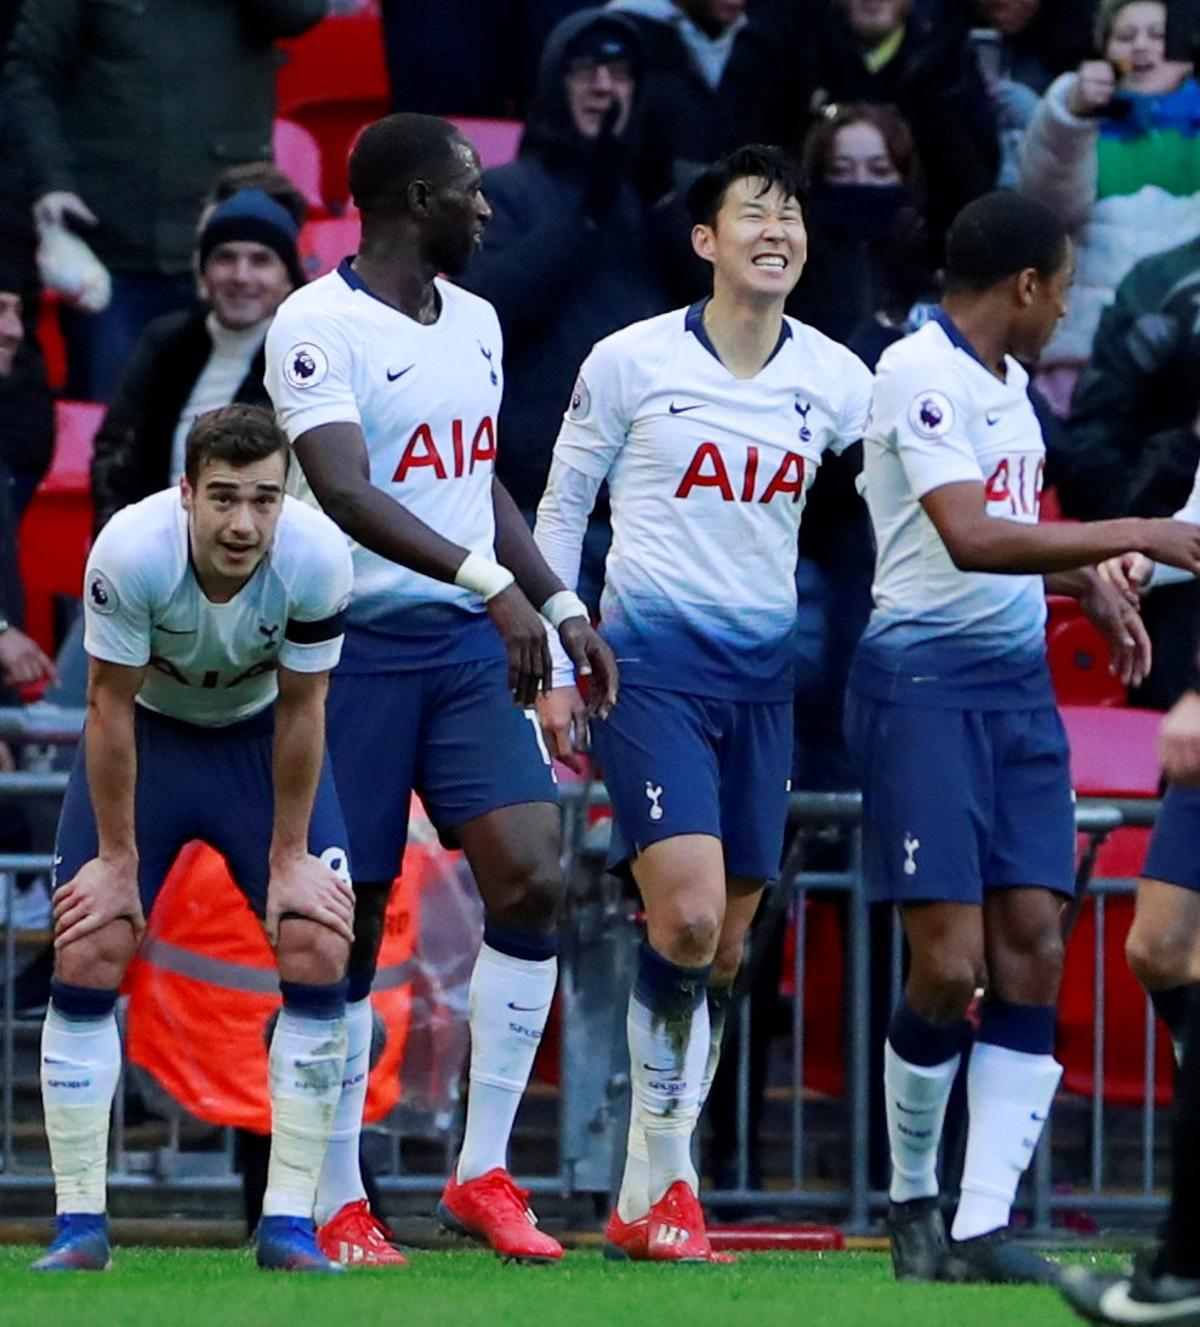 Son In Line For New Tottenham Deal